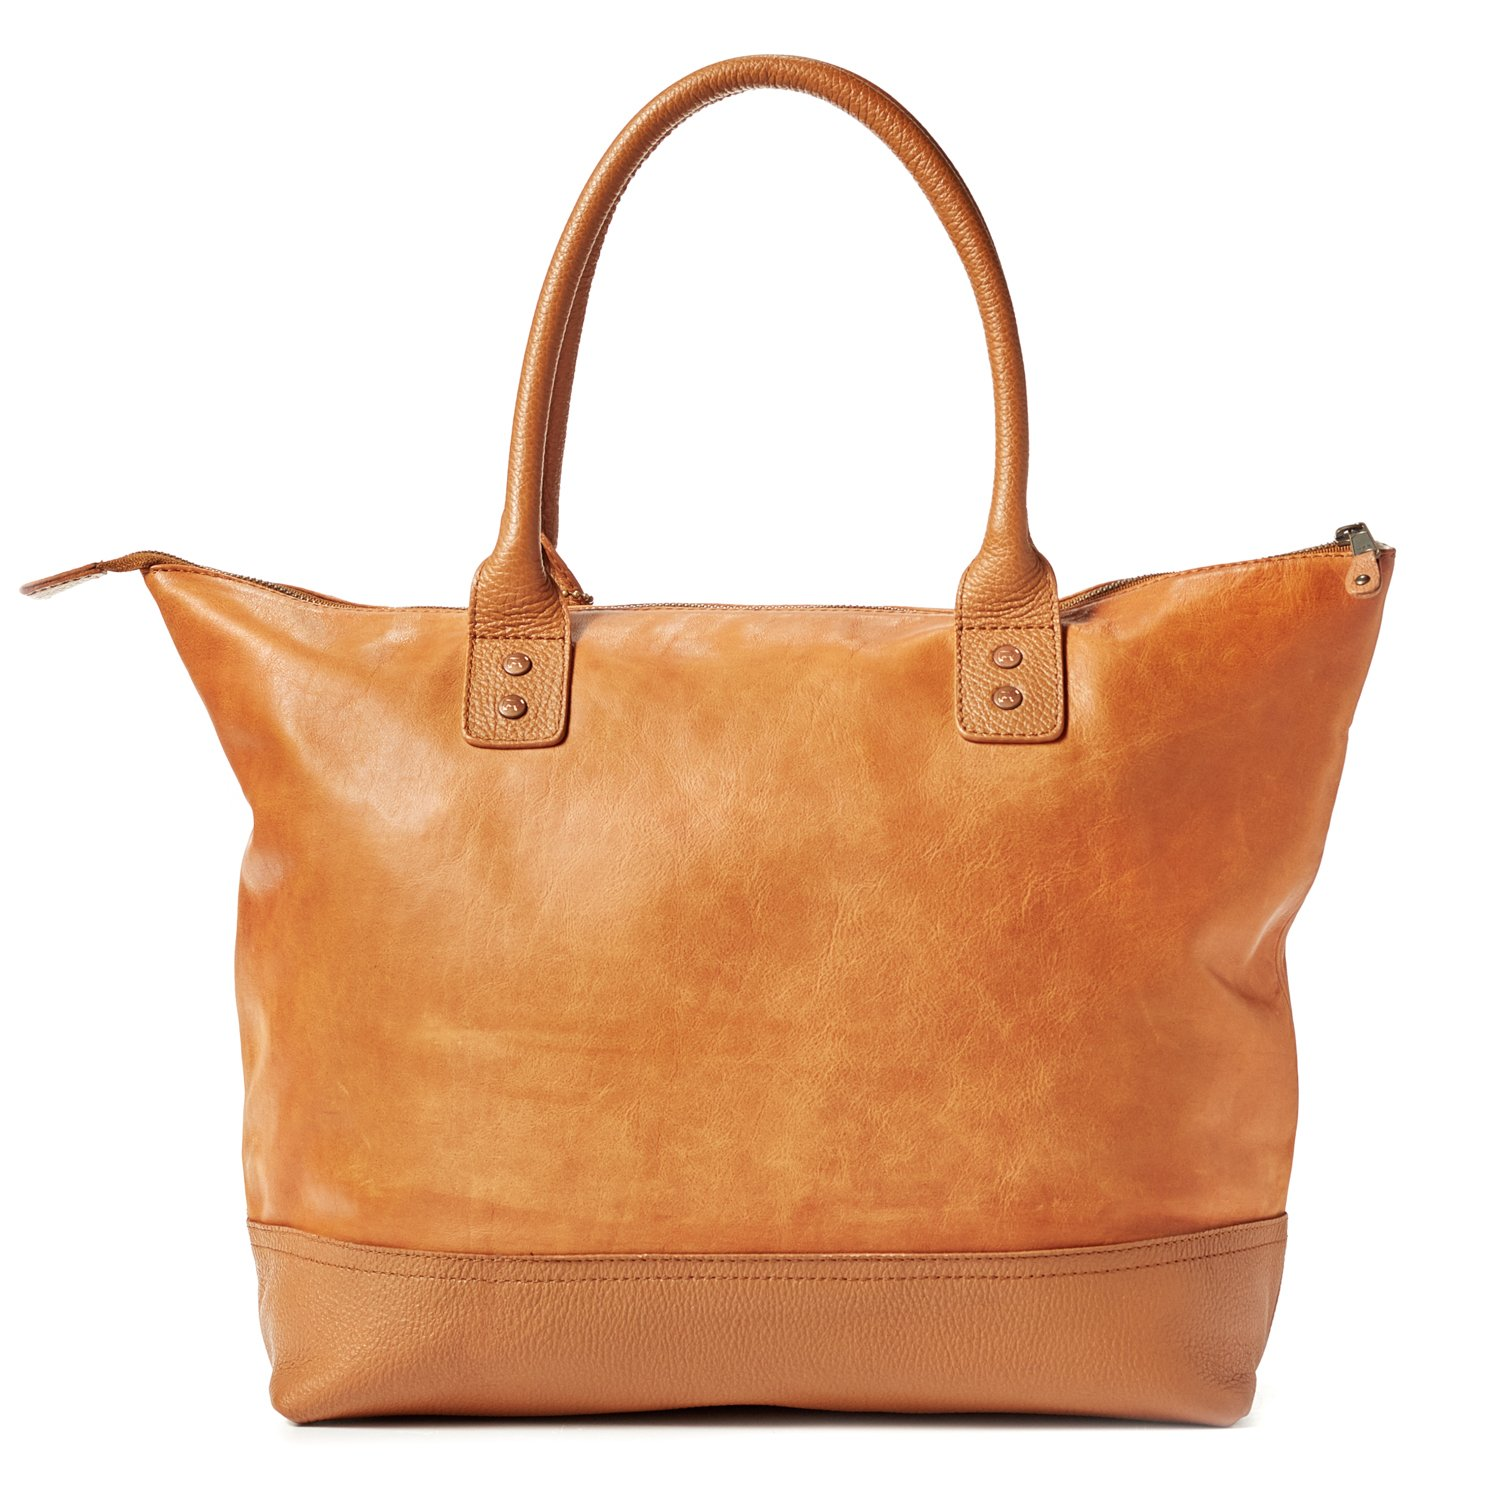 Amazon.com   Will Leather Goods Totes Bag Collection Tan Leather Getaway  Tote   Travel Totes a316070bc9